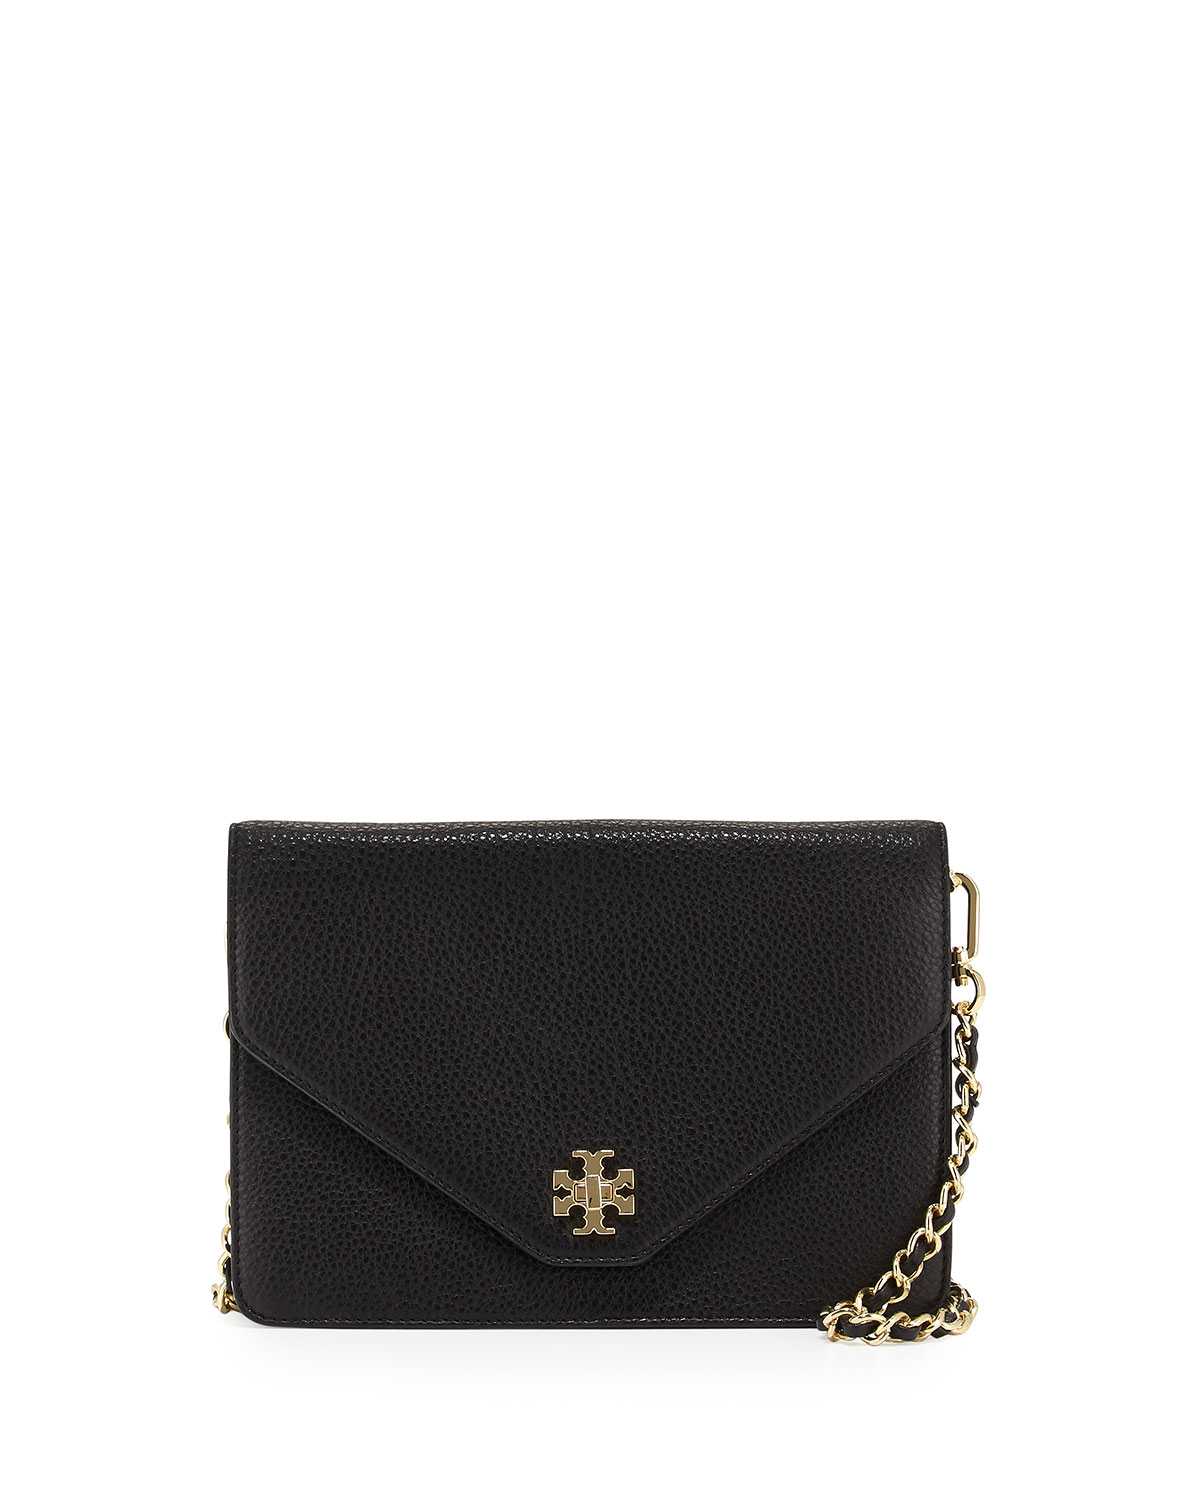 0ed29bb13a Tory Burch Kira Leather Envelope Clutch Bag, Black | Neiman Marcus